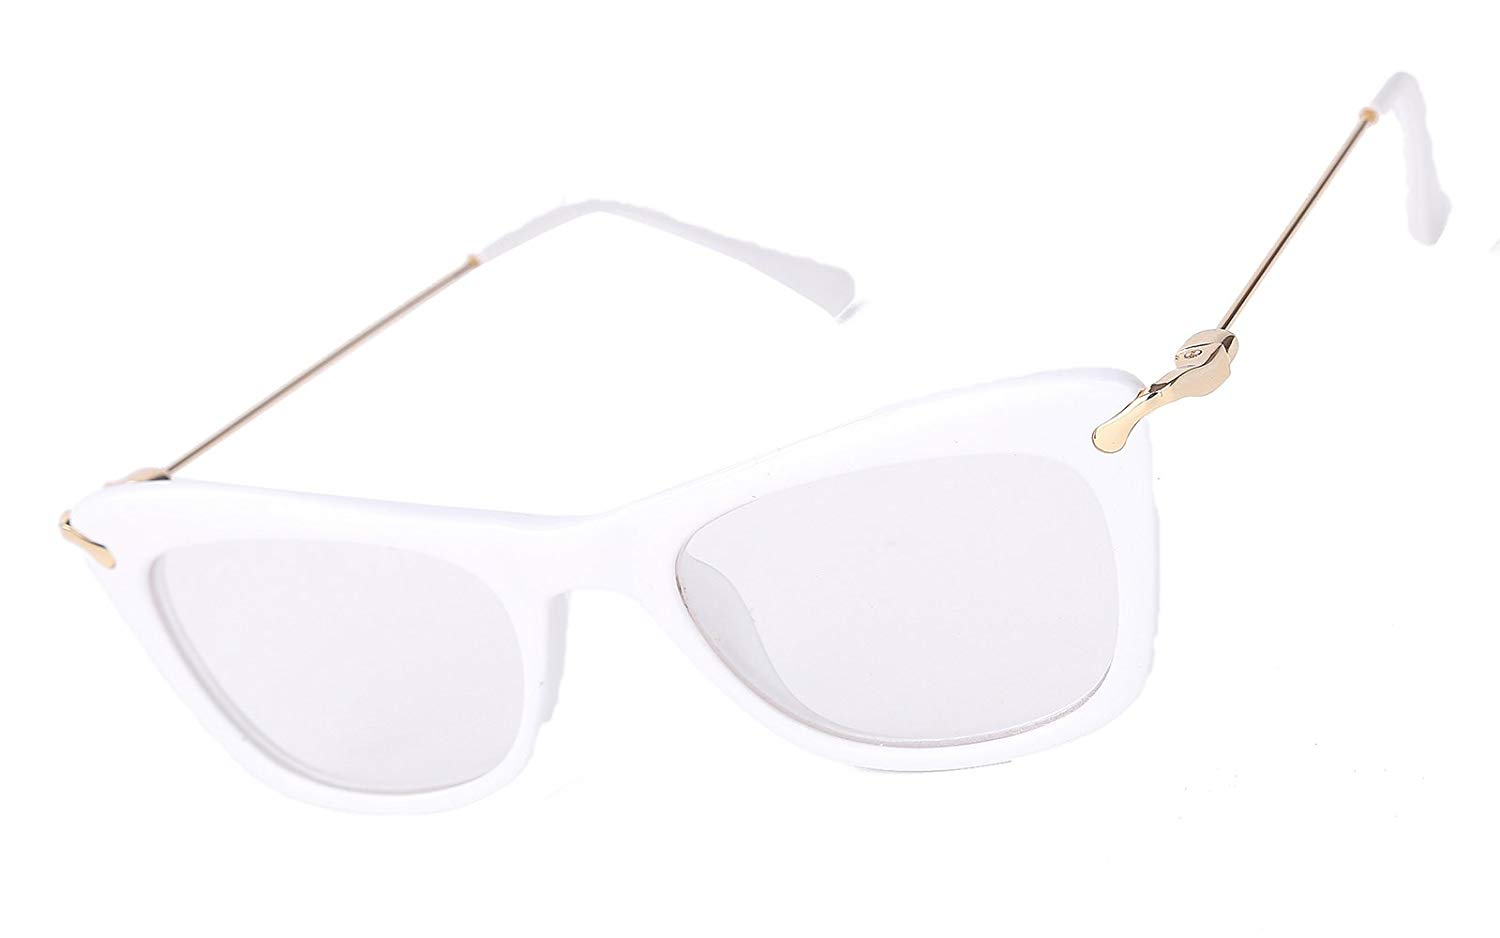 b4d83a27f Get Quotations · Beison Womens Cat Eye Glasses Frame With Metal Arms Clear  Lens